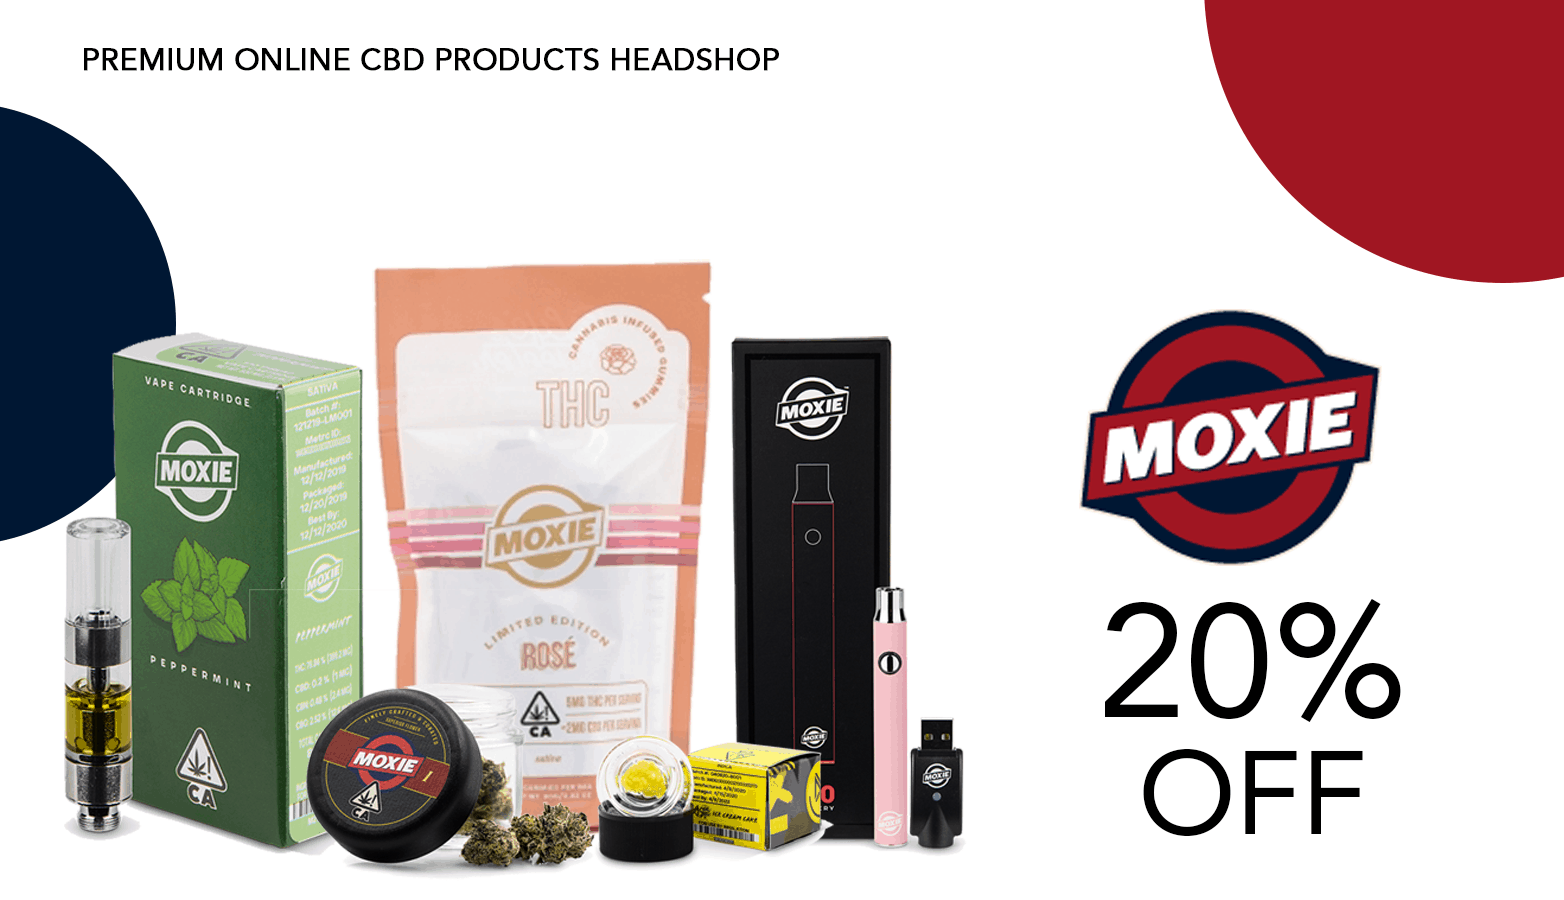 Moxie Cannabis Delivery CBD THC Coupon Code Promo